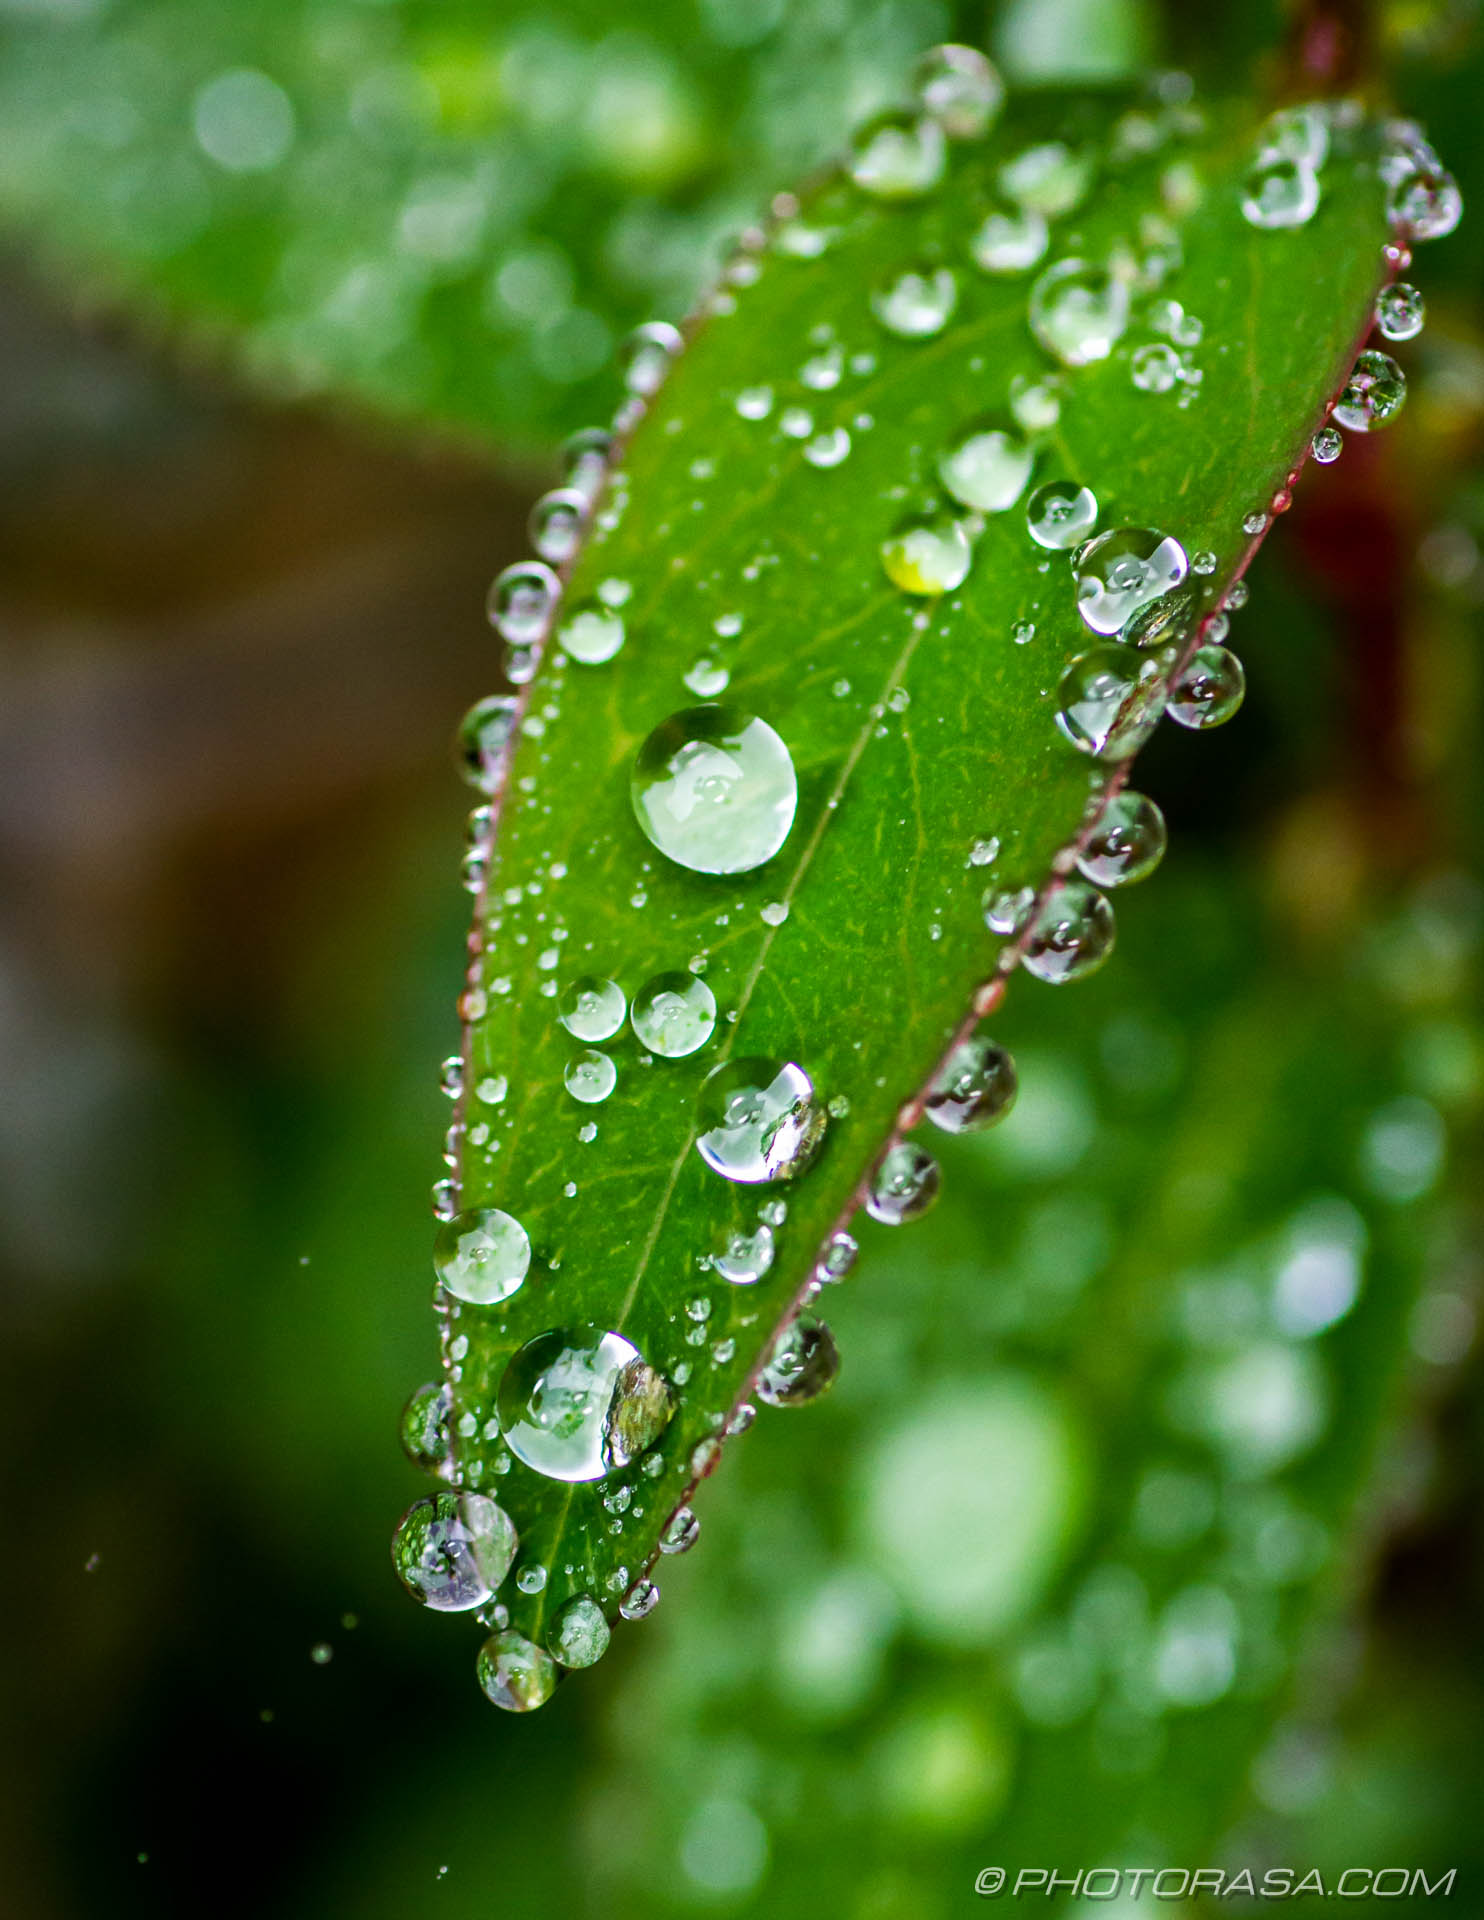 tiny water droplets on small leaf - Photorasa Free HD Photos